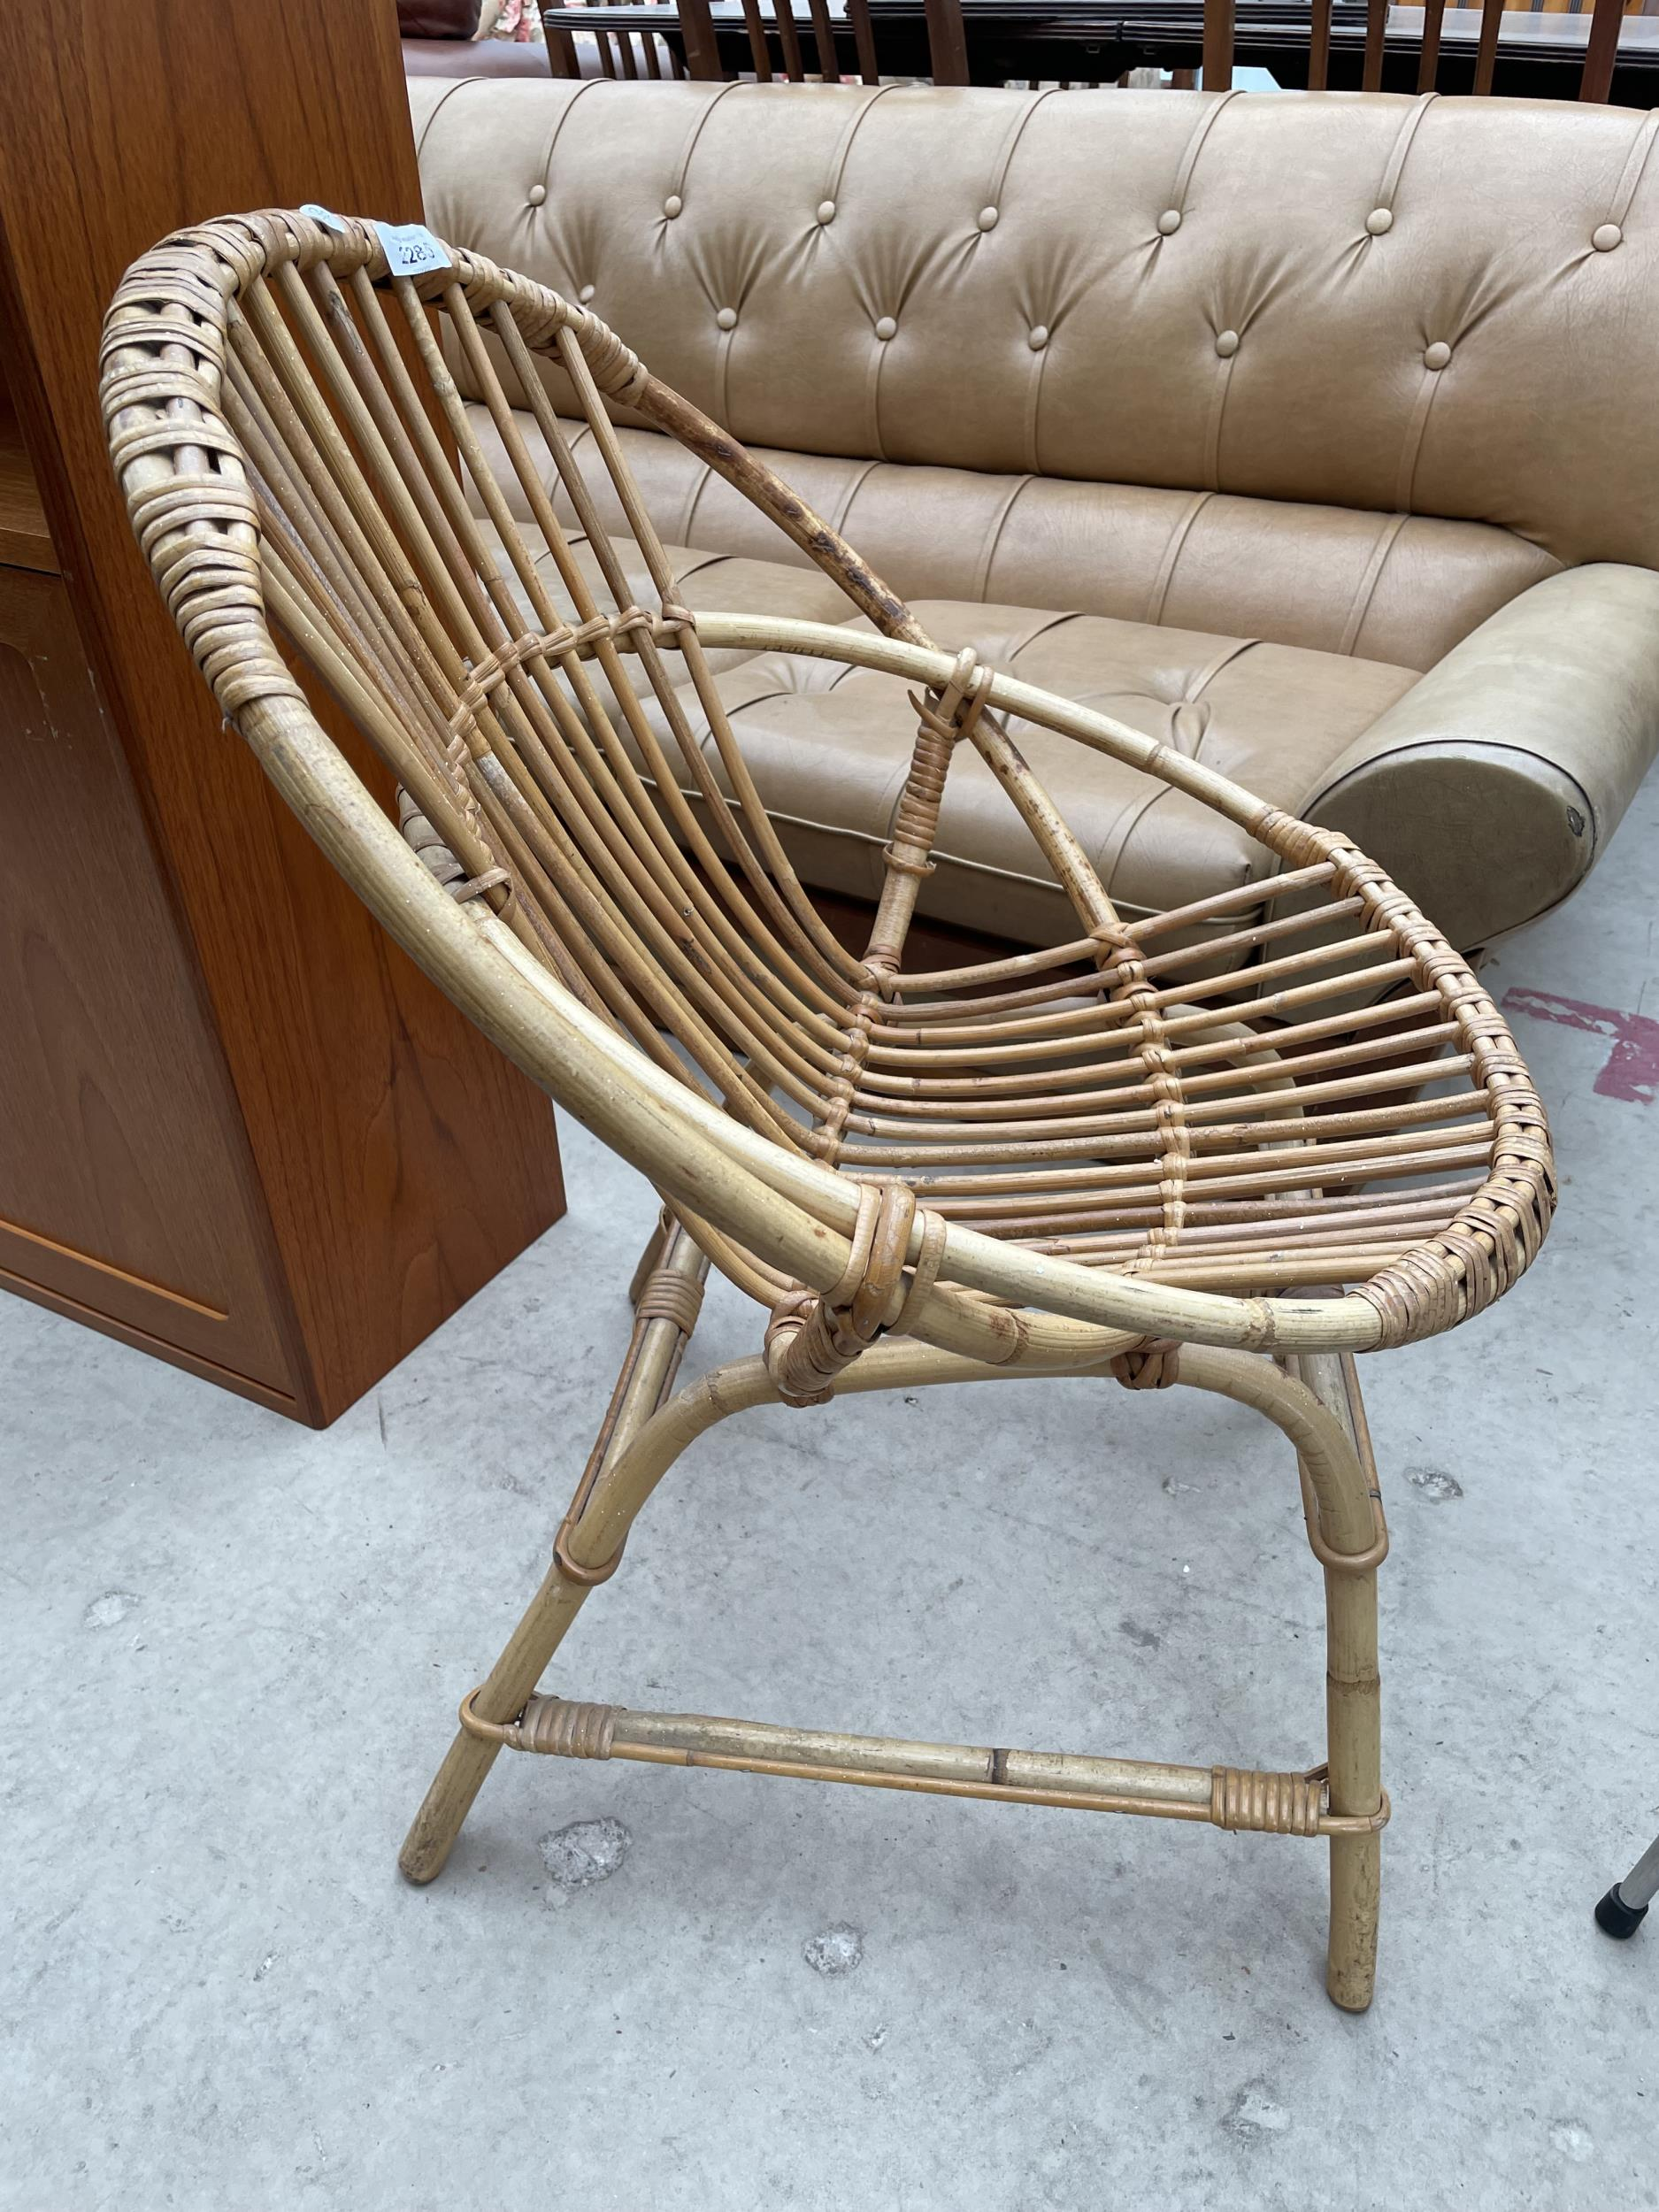 A 1970'S BAMBOO CONSERVATORY CHAIR - Image 2 of 2